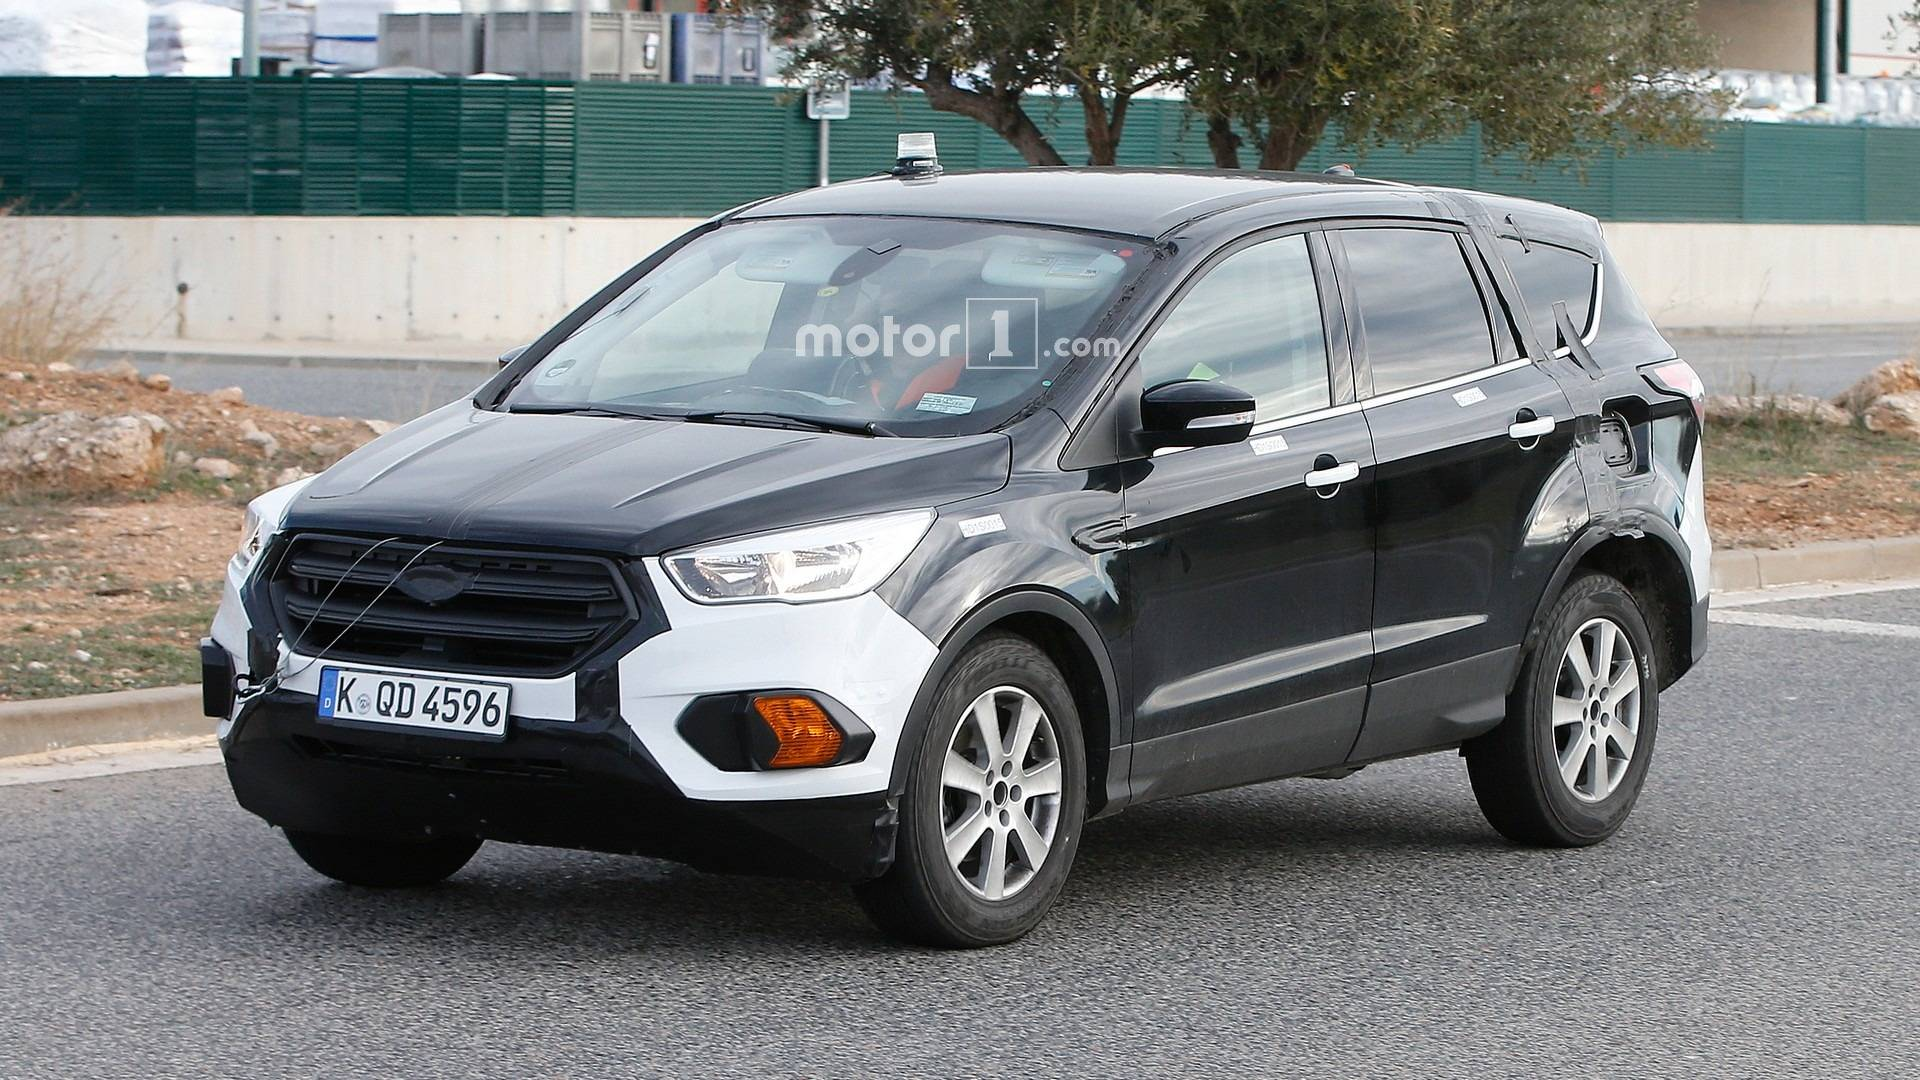 2020 ford kuga escape spied hiding underneath enlarged test mule